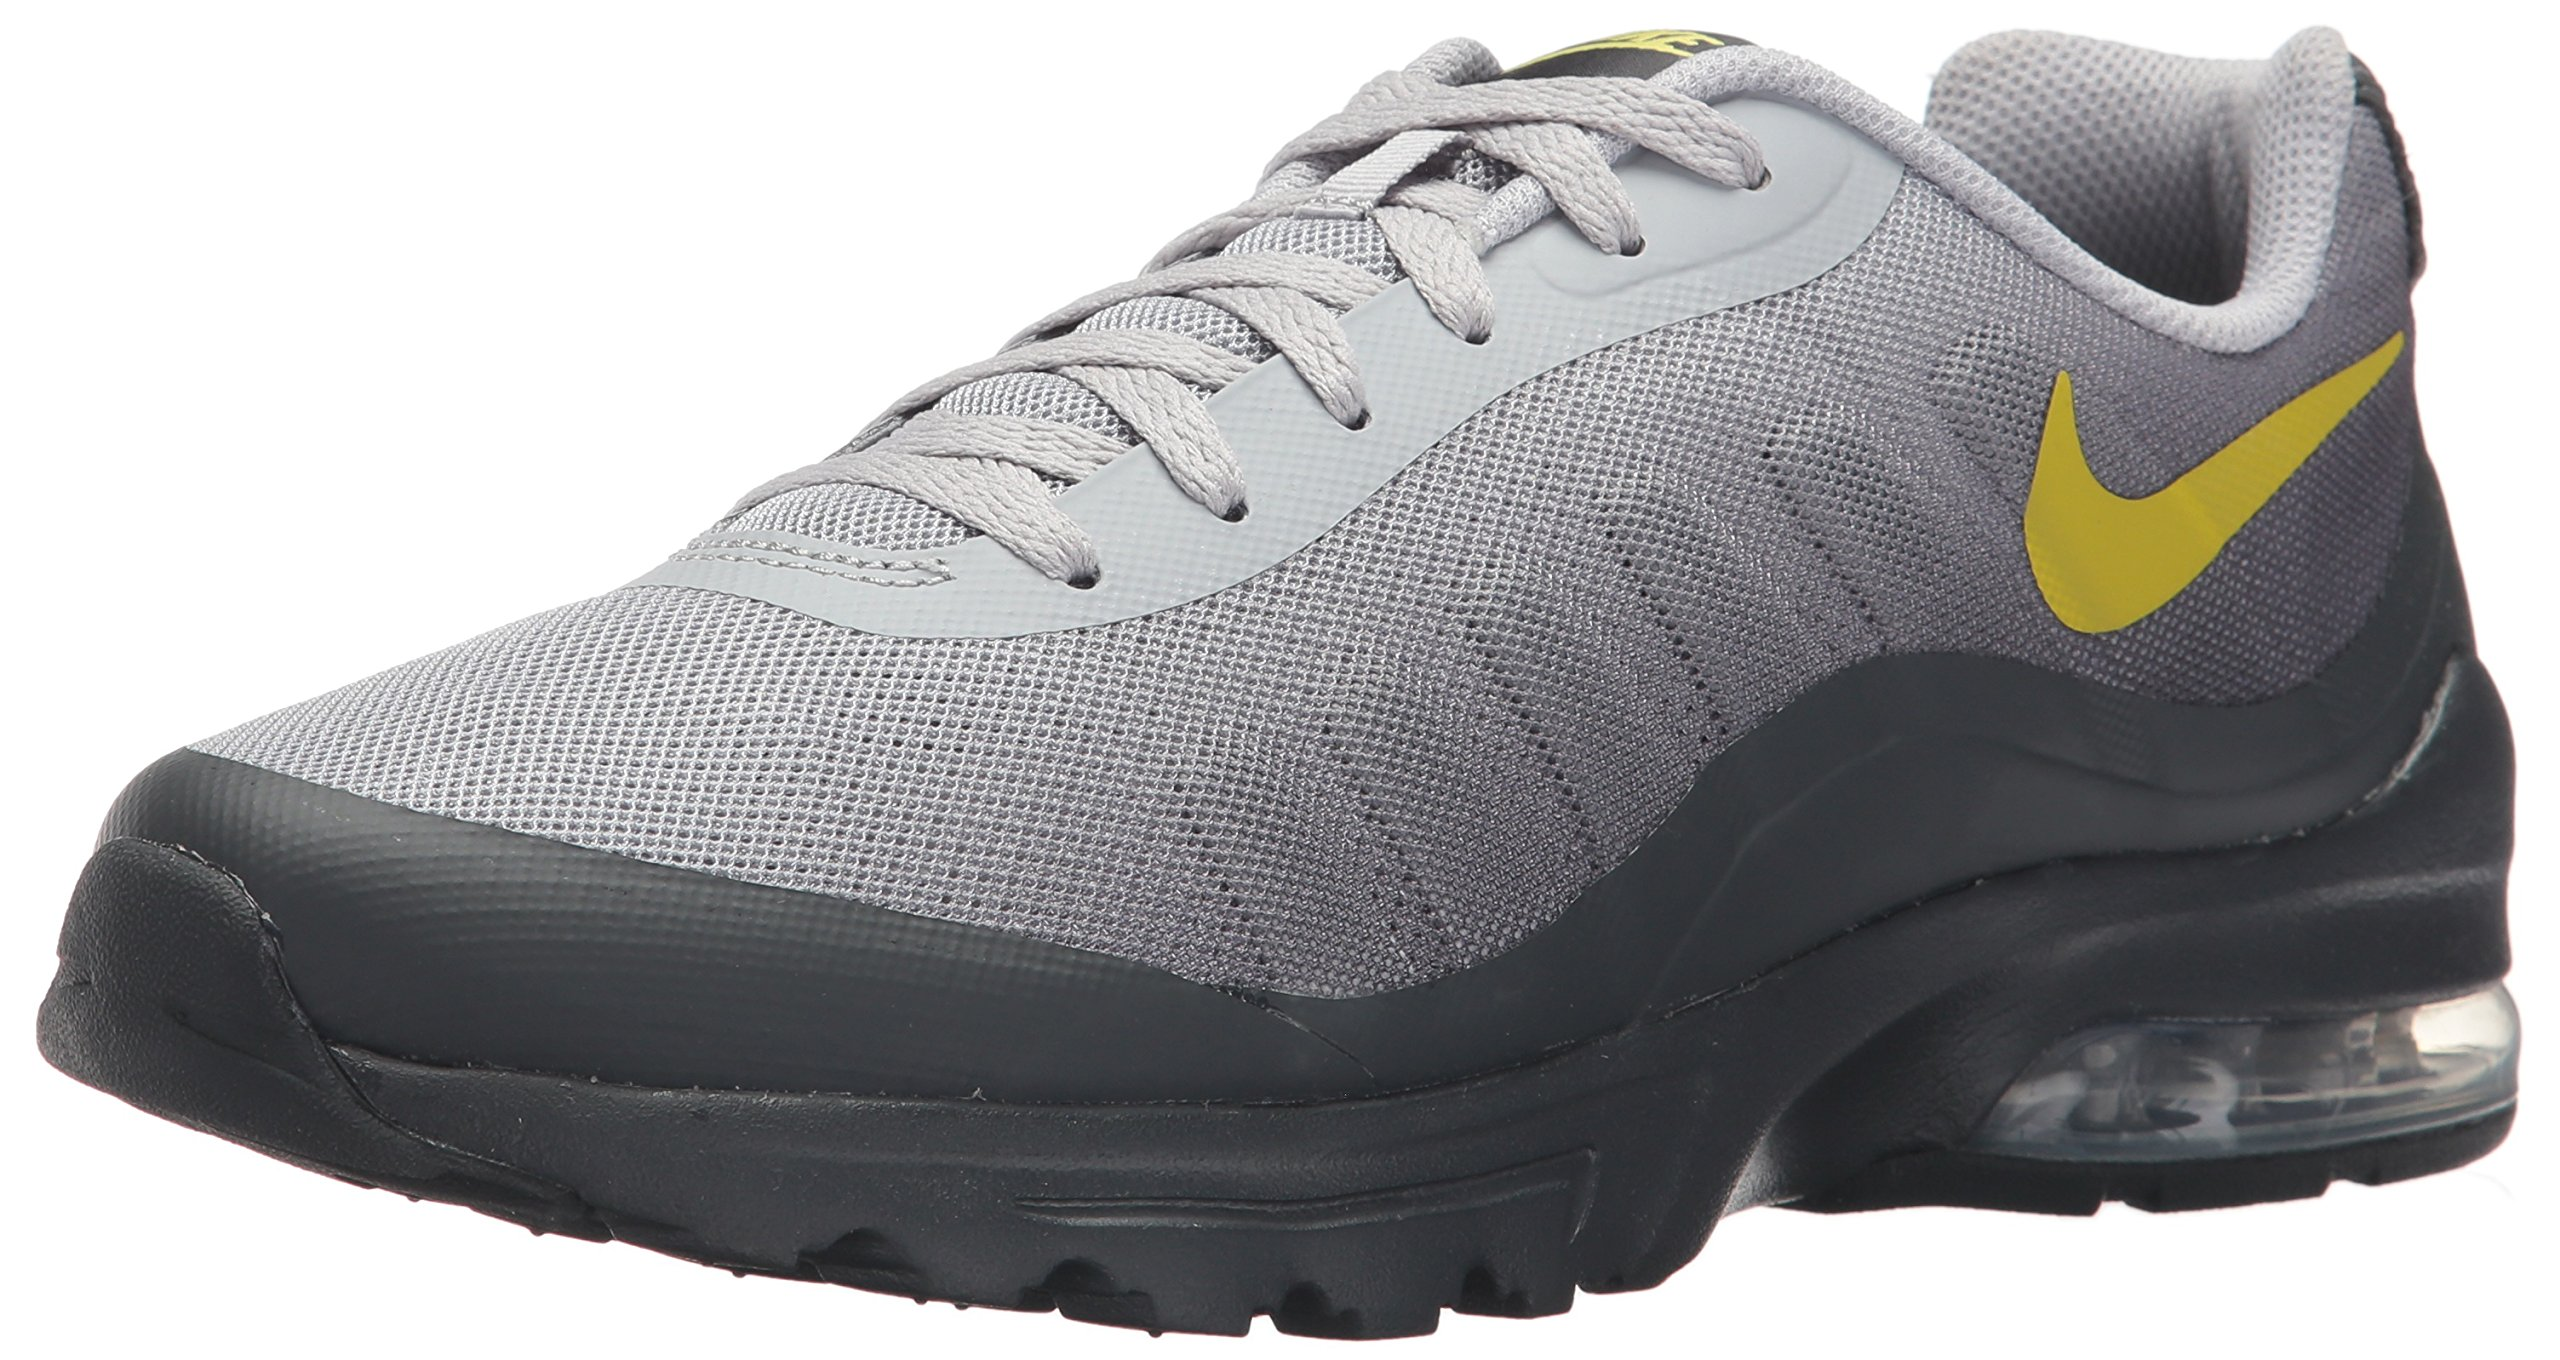 low priced 89543 874a8 Galleon - Nike Men s Air Max Invigor Print Running Shoe, Wolf Grey Bright  Cactus Anthracite, 7 D US